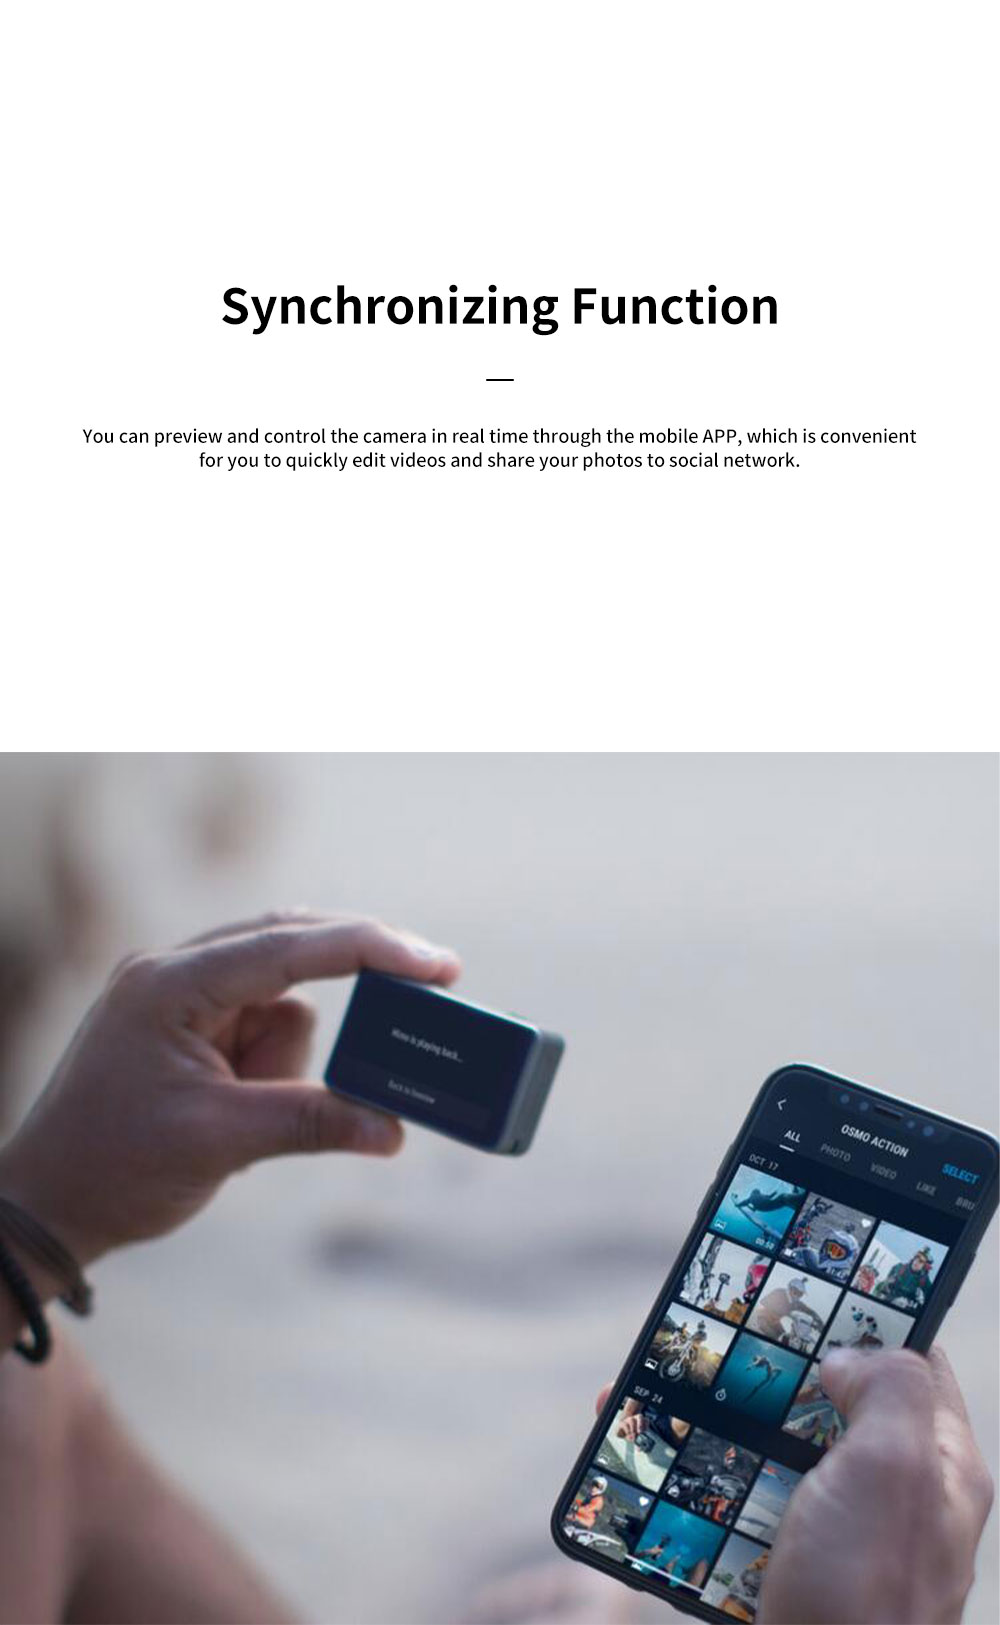 DJI Osmo Action Camera Professional Multifunctional Waterproof Sports Camera with Dual HD Screen Time-lapse Shooting Slow-motion Record Voice Control Easy Operation 10